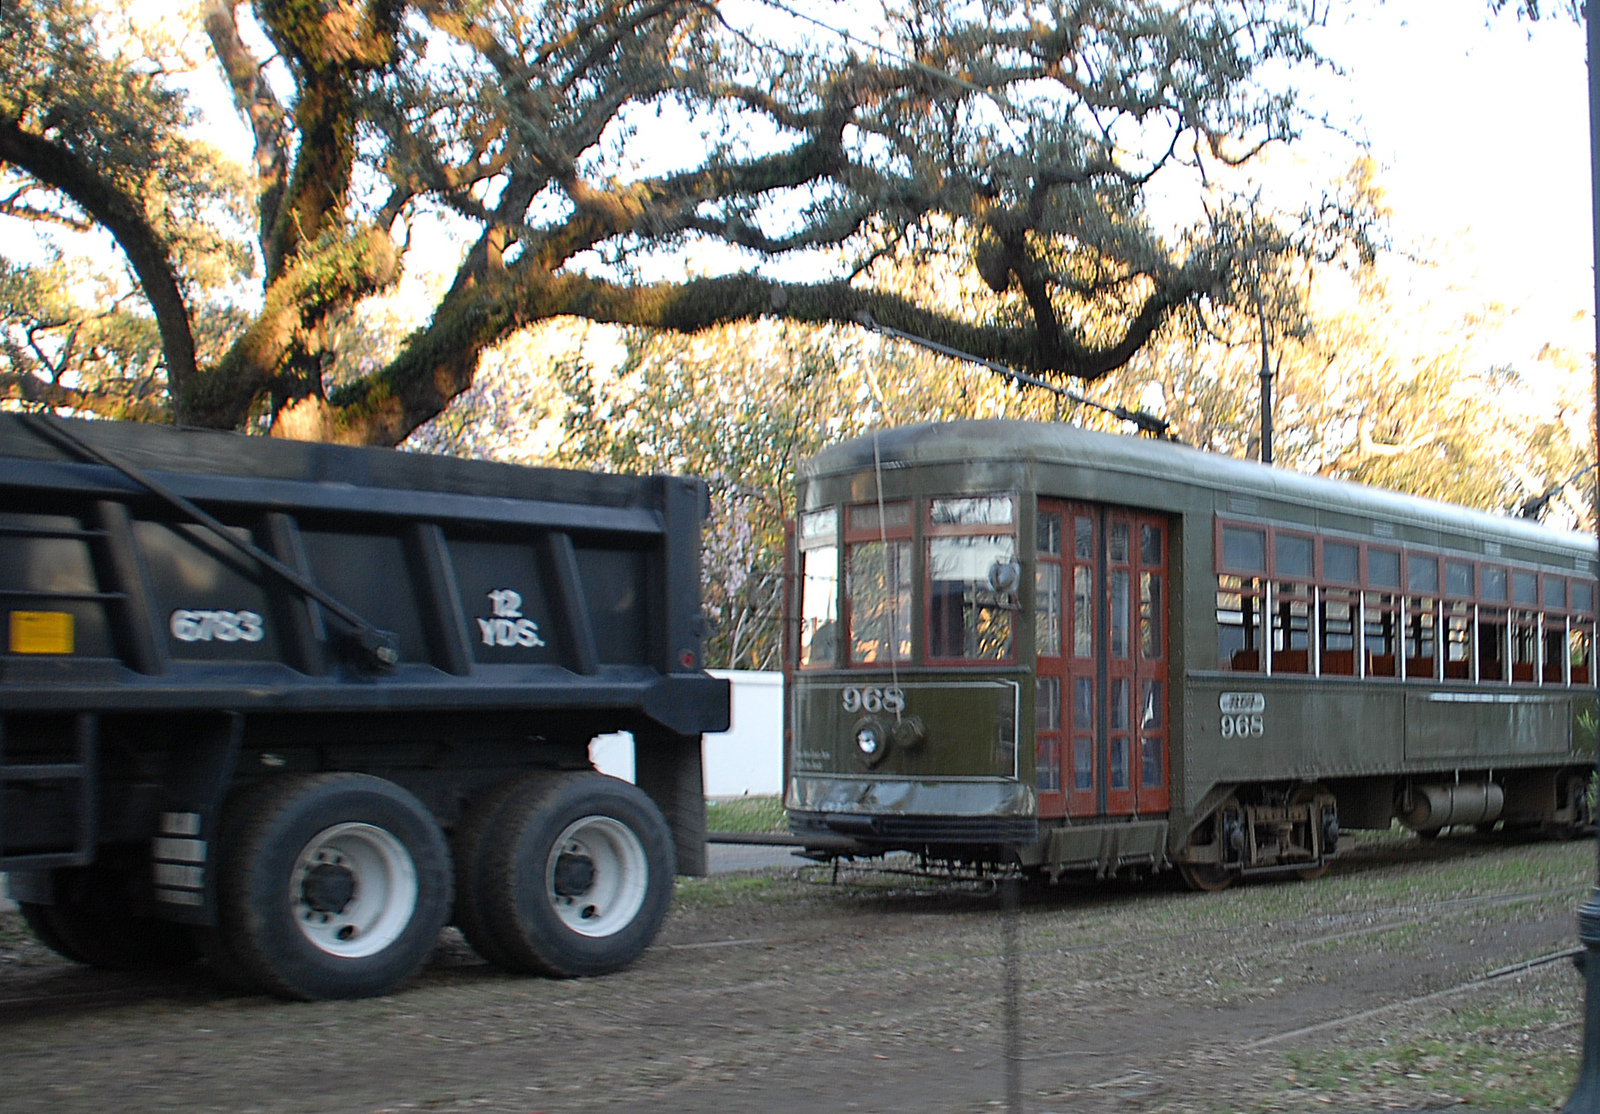 Streetcar being pulled by a transit worker truck, no electric power, repairing new orleans tracks and lines Hurricane Katrina